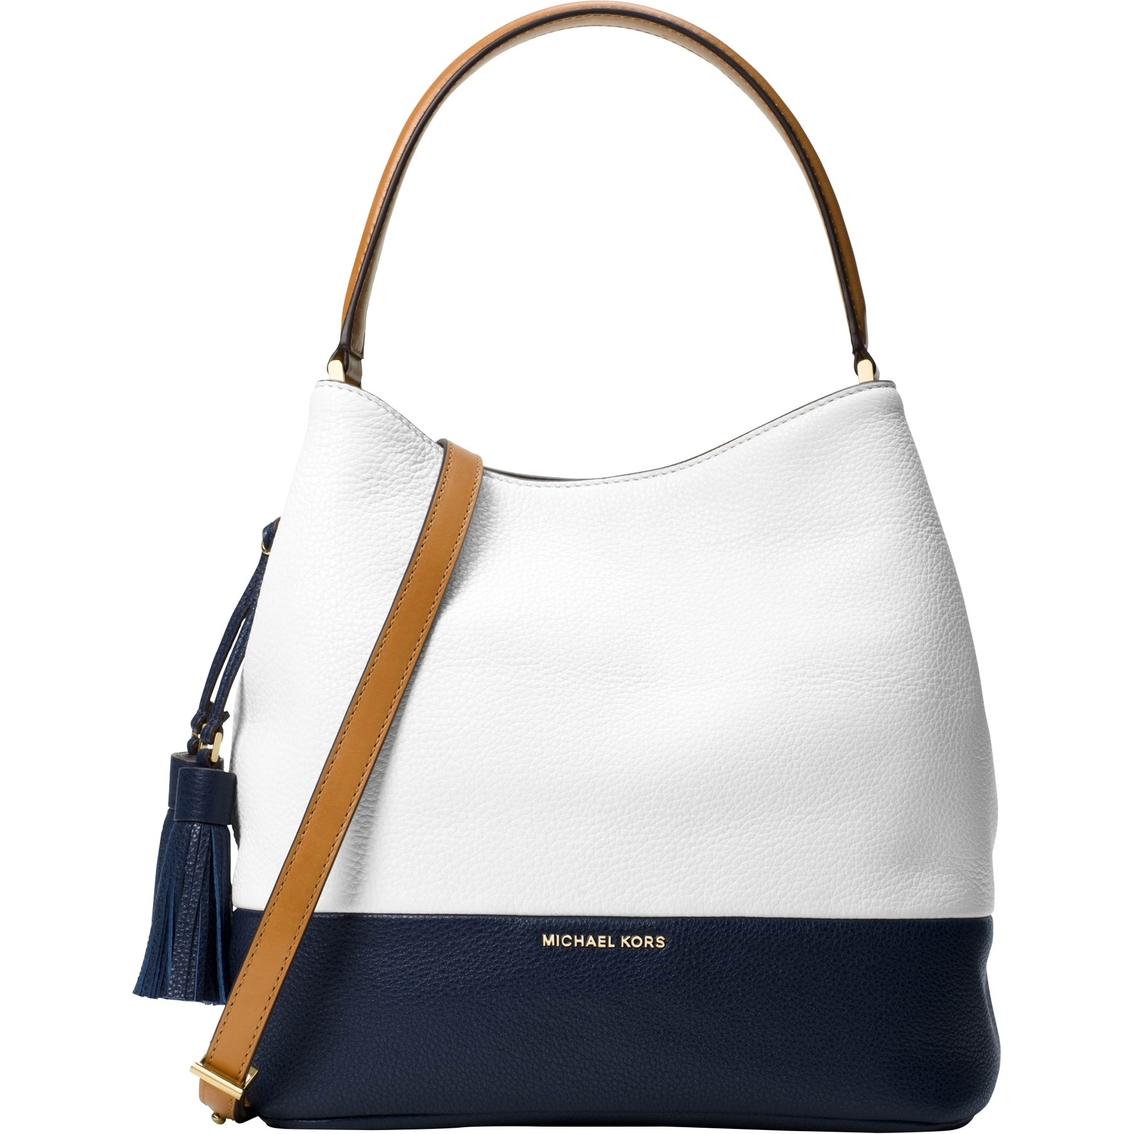 753b8ff3c31e95 Michael Kors Kip Large Leather Bucket Bag | Handbags | Shop The Exchange